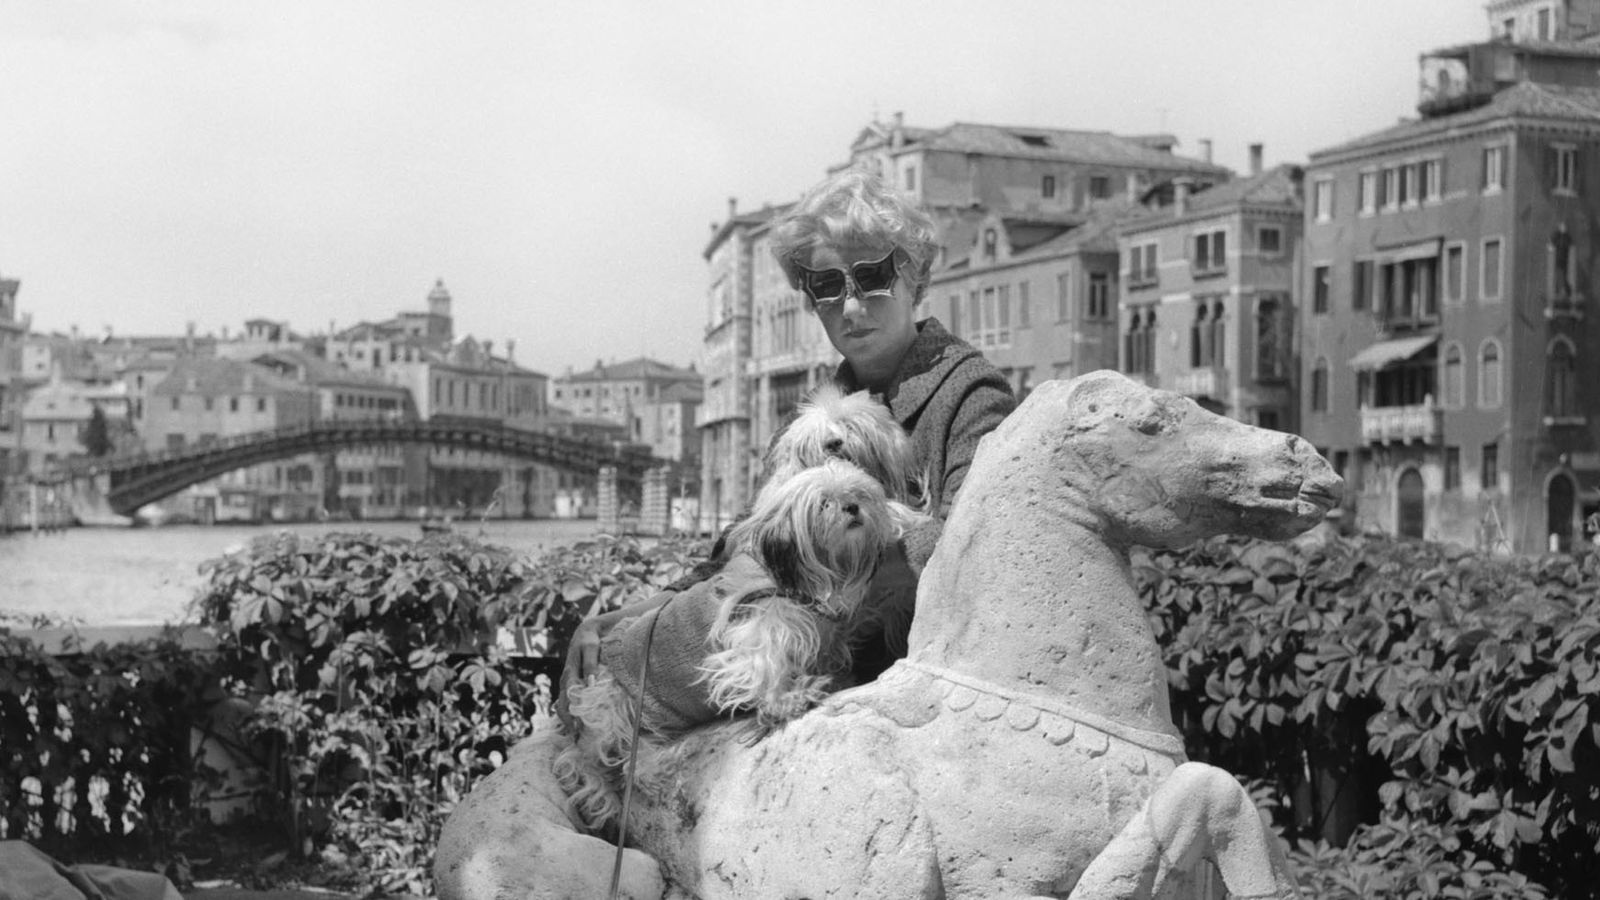 Peggy Guggenheim with her Lhasa Apsos terriers on the terrace of Palazzo Venier dei Leoni.